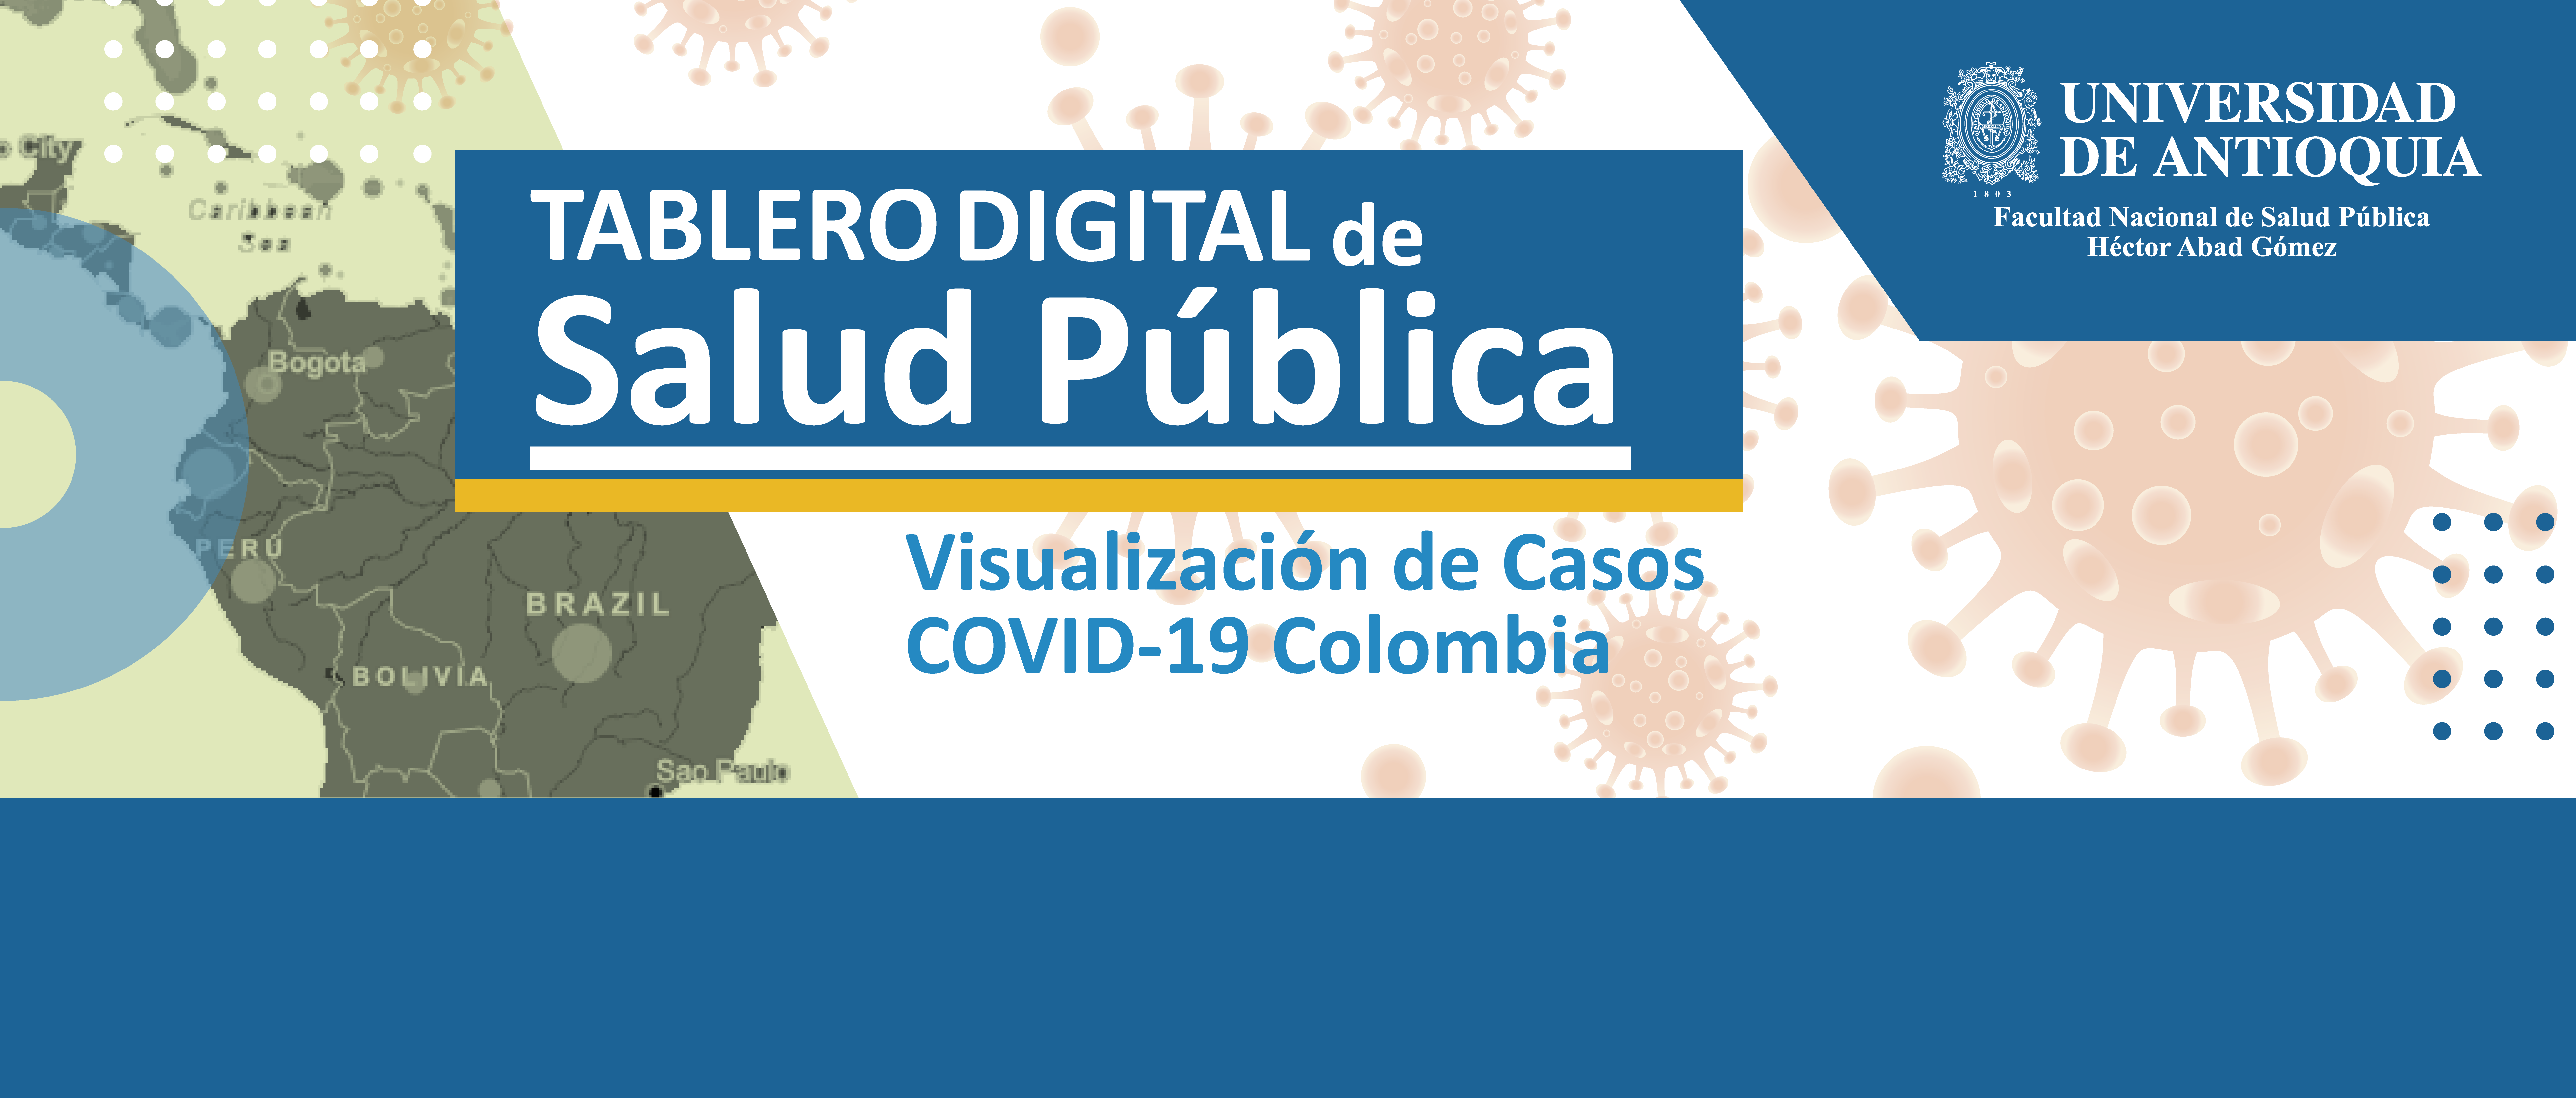 Visualización Casos Covid-19 Colombia